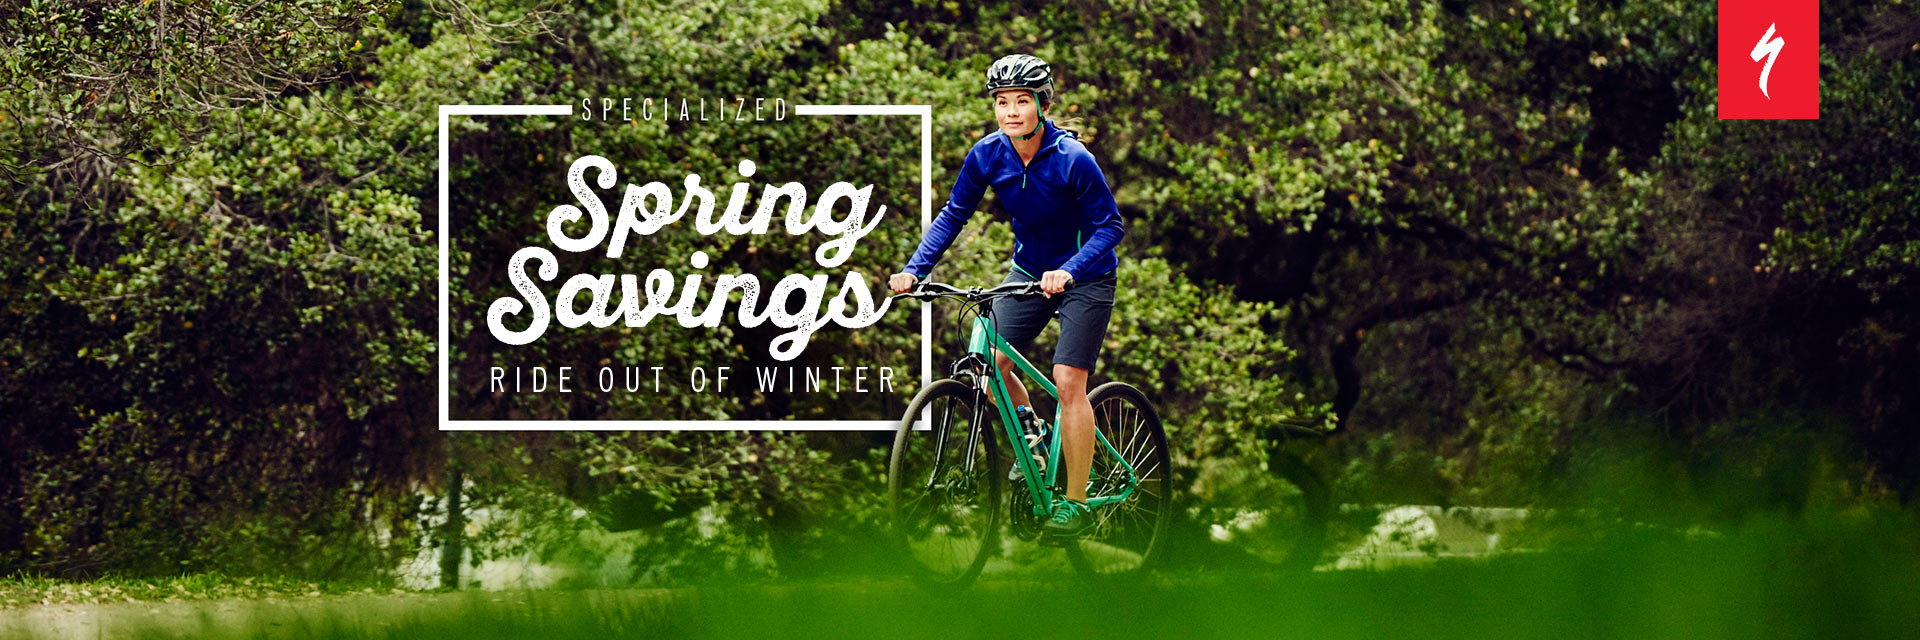 Specialized Spring Savings